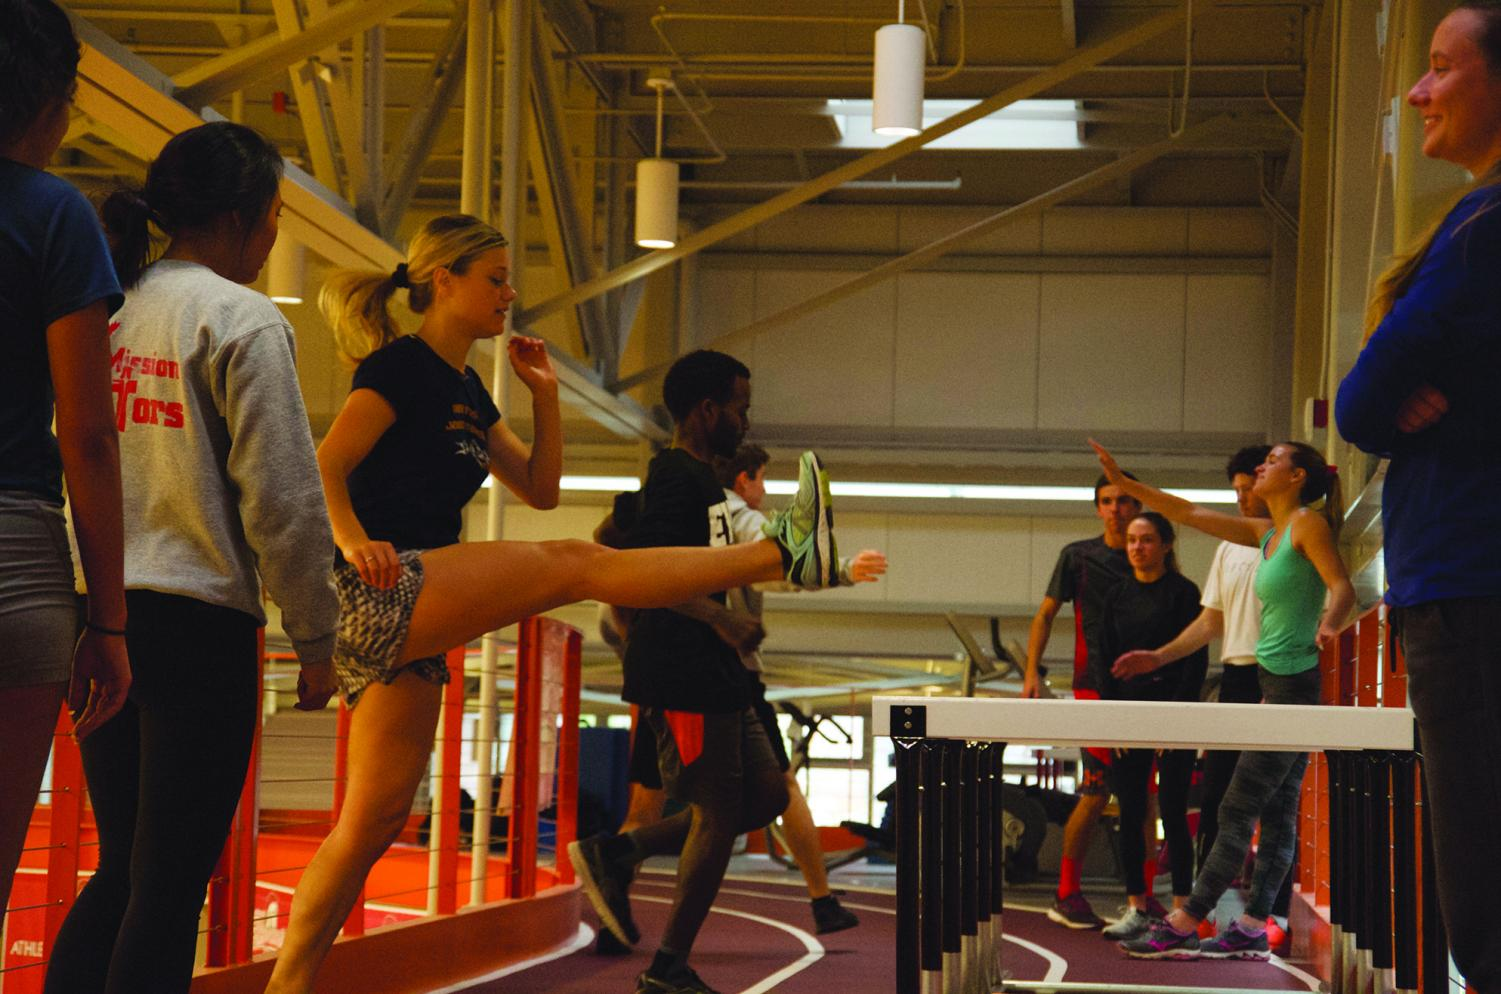 Kicking it during warm up drills with Kaitlin Morgan (left). Coach Tansey Lystad (right foreground) leads cross country practice on Monday Oct. 8 at the Walt Price Student Fitness Center.